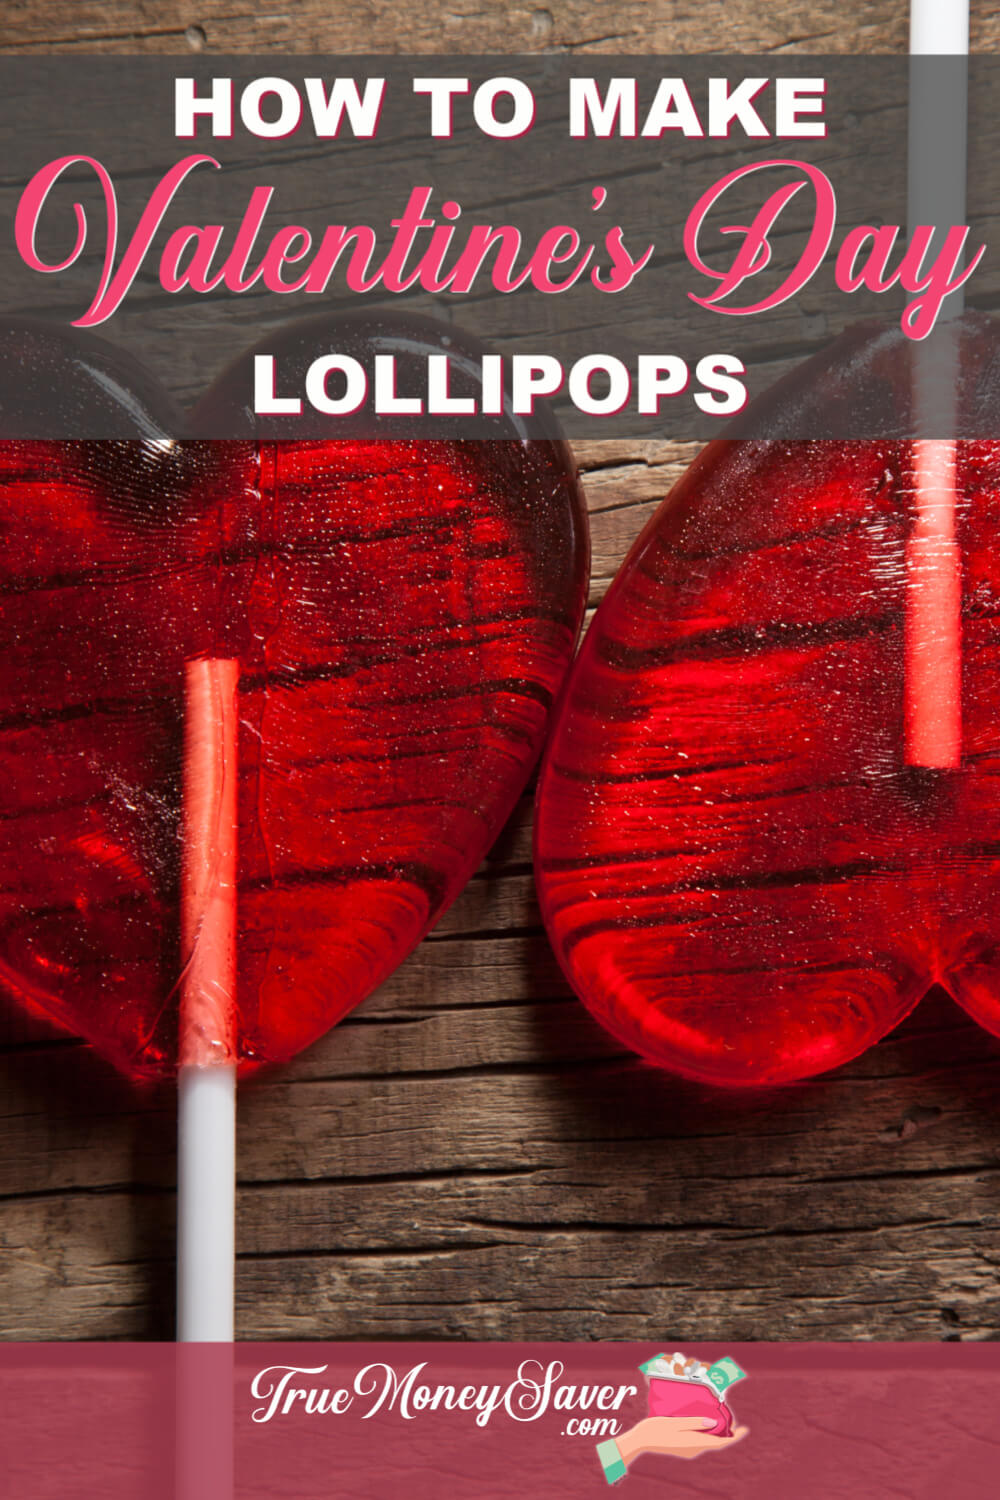 Want to make a homemade gift to share the love this Valentine\'s Day? These Valentine\'s Day lollipops are it! Use this hard candy lollipops recipe to make the best DIY candy lollipops you\'ve ever tasted! Start making these now! #truemoneysaver #diy #diygift #valentines #valentinesday #valentinesgift #valentine #valentineslollipop #valentineslollipops #valentinessuckers #valentinessucker #lollipop #lollipops #diylollipop #diylollipops #candy #candycandy #diycandy #homemadecandy